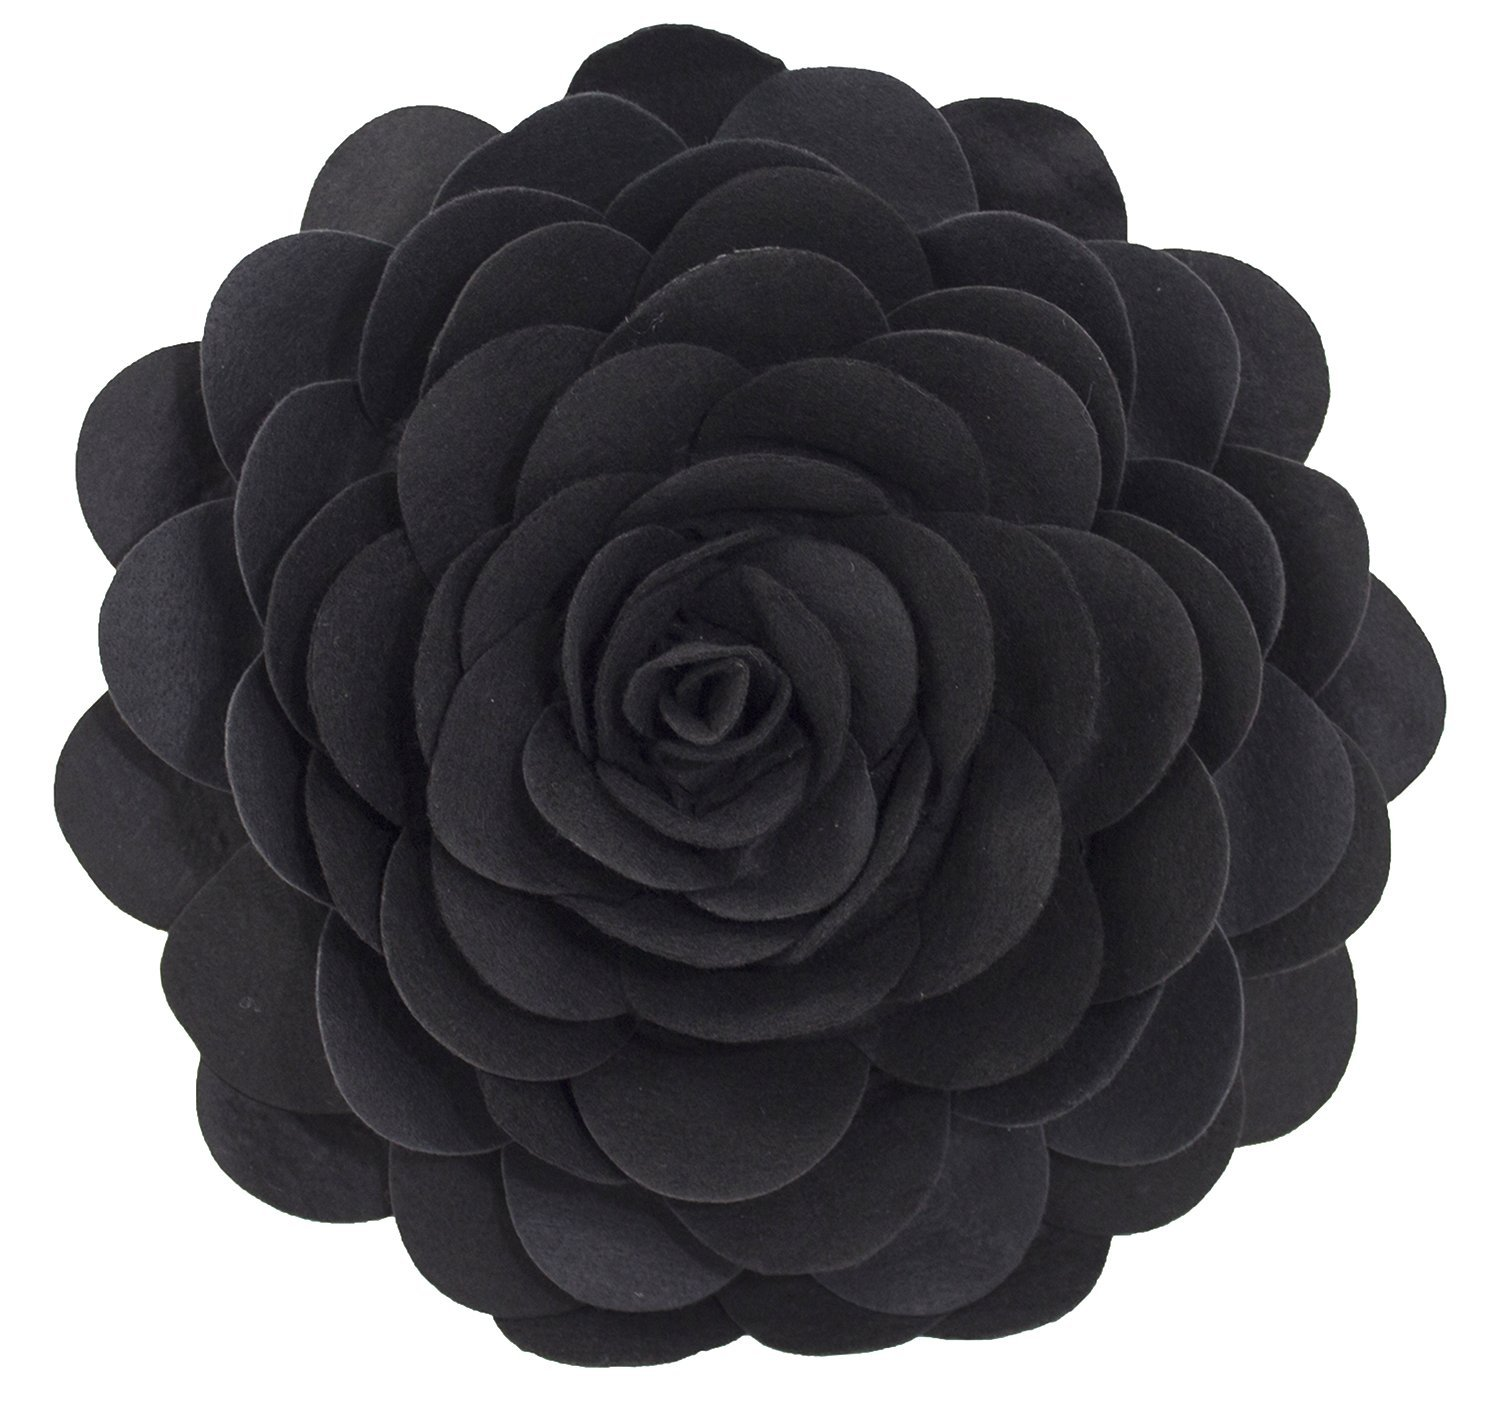 Eva's Flower Garden Decorative Throw Pillow With Insert - 13 inch Round (Black-Case Only)